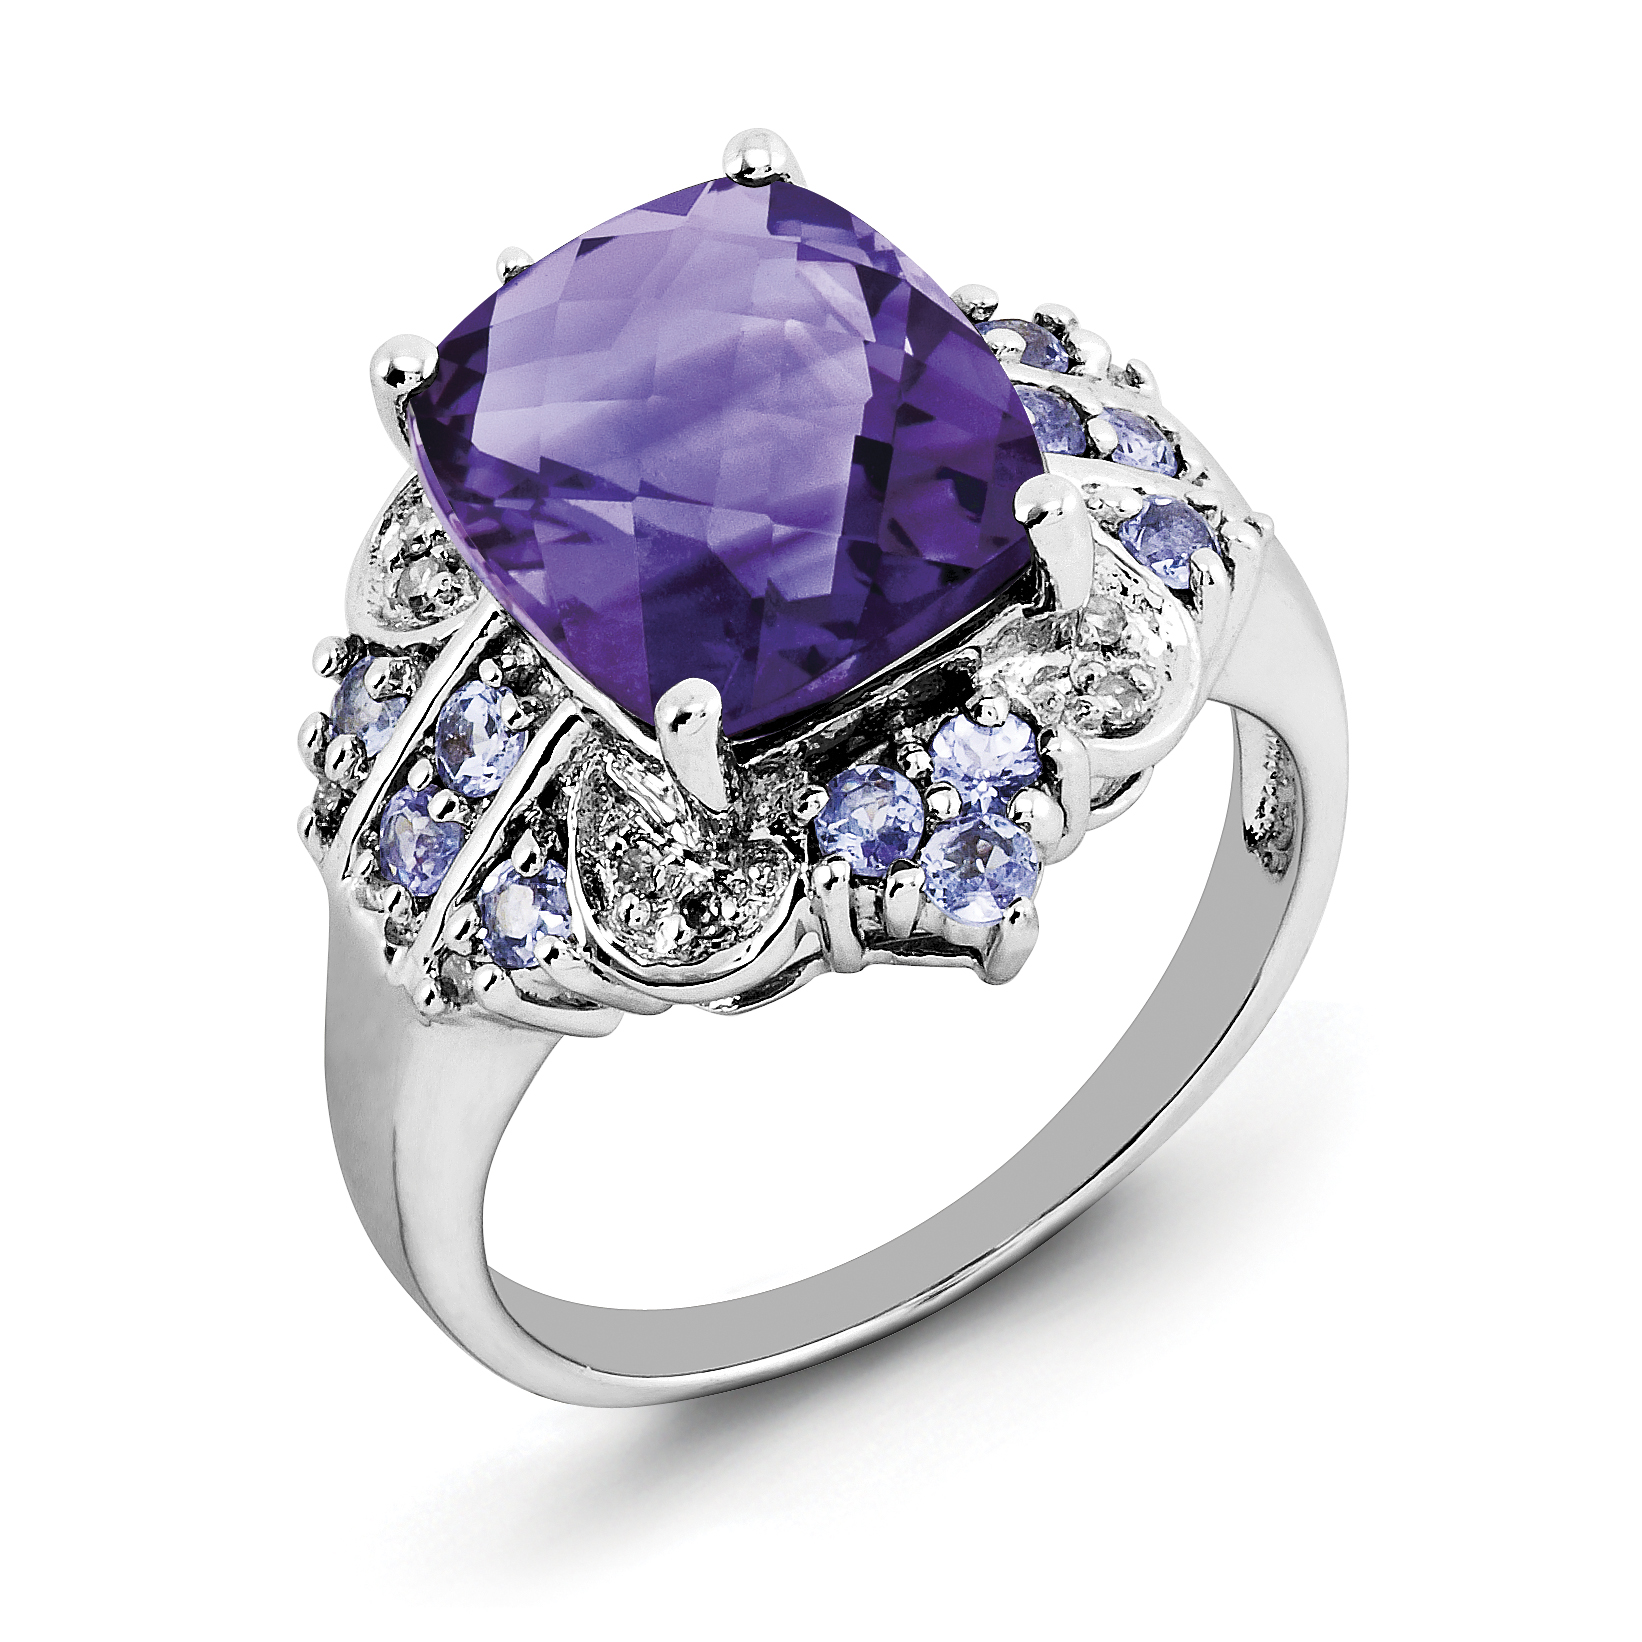 Sterling Silver Rhodium-plated Amethyst, Tanzanite & Diamond Ring by CoutureJewelers